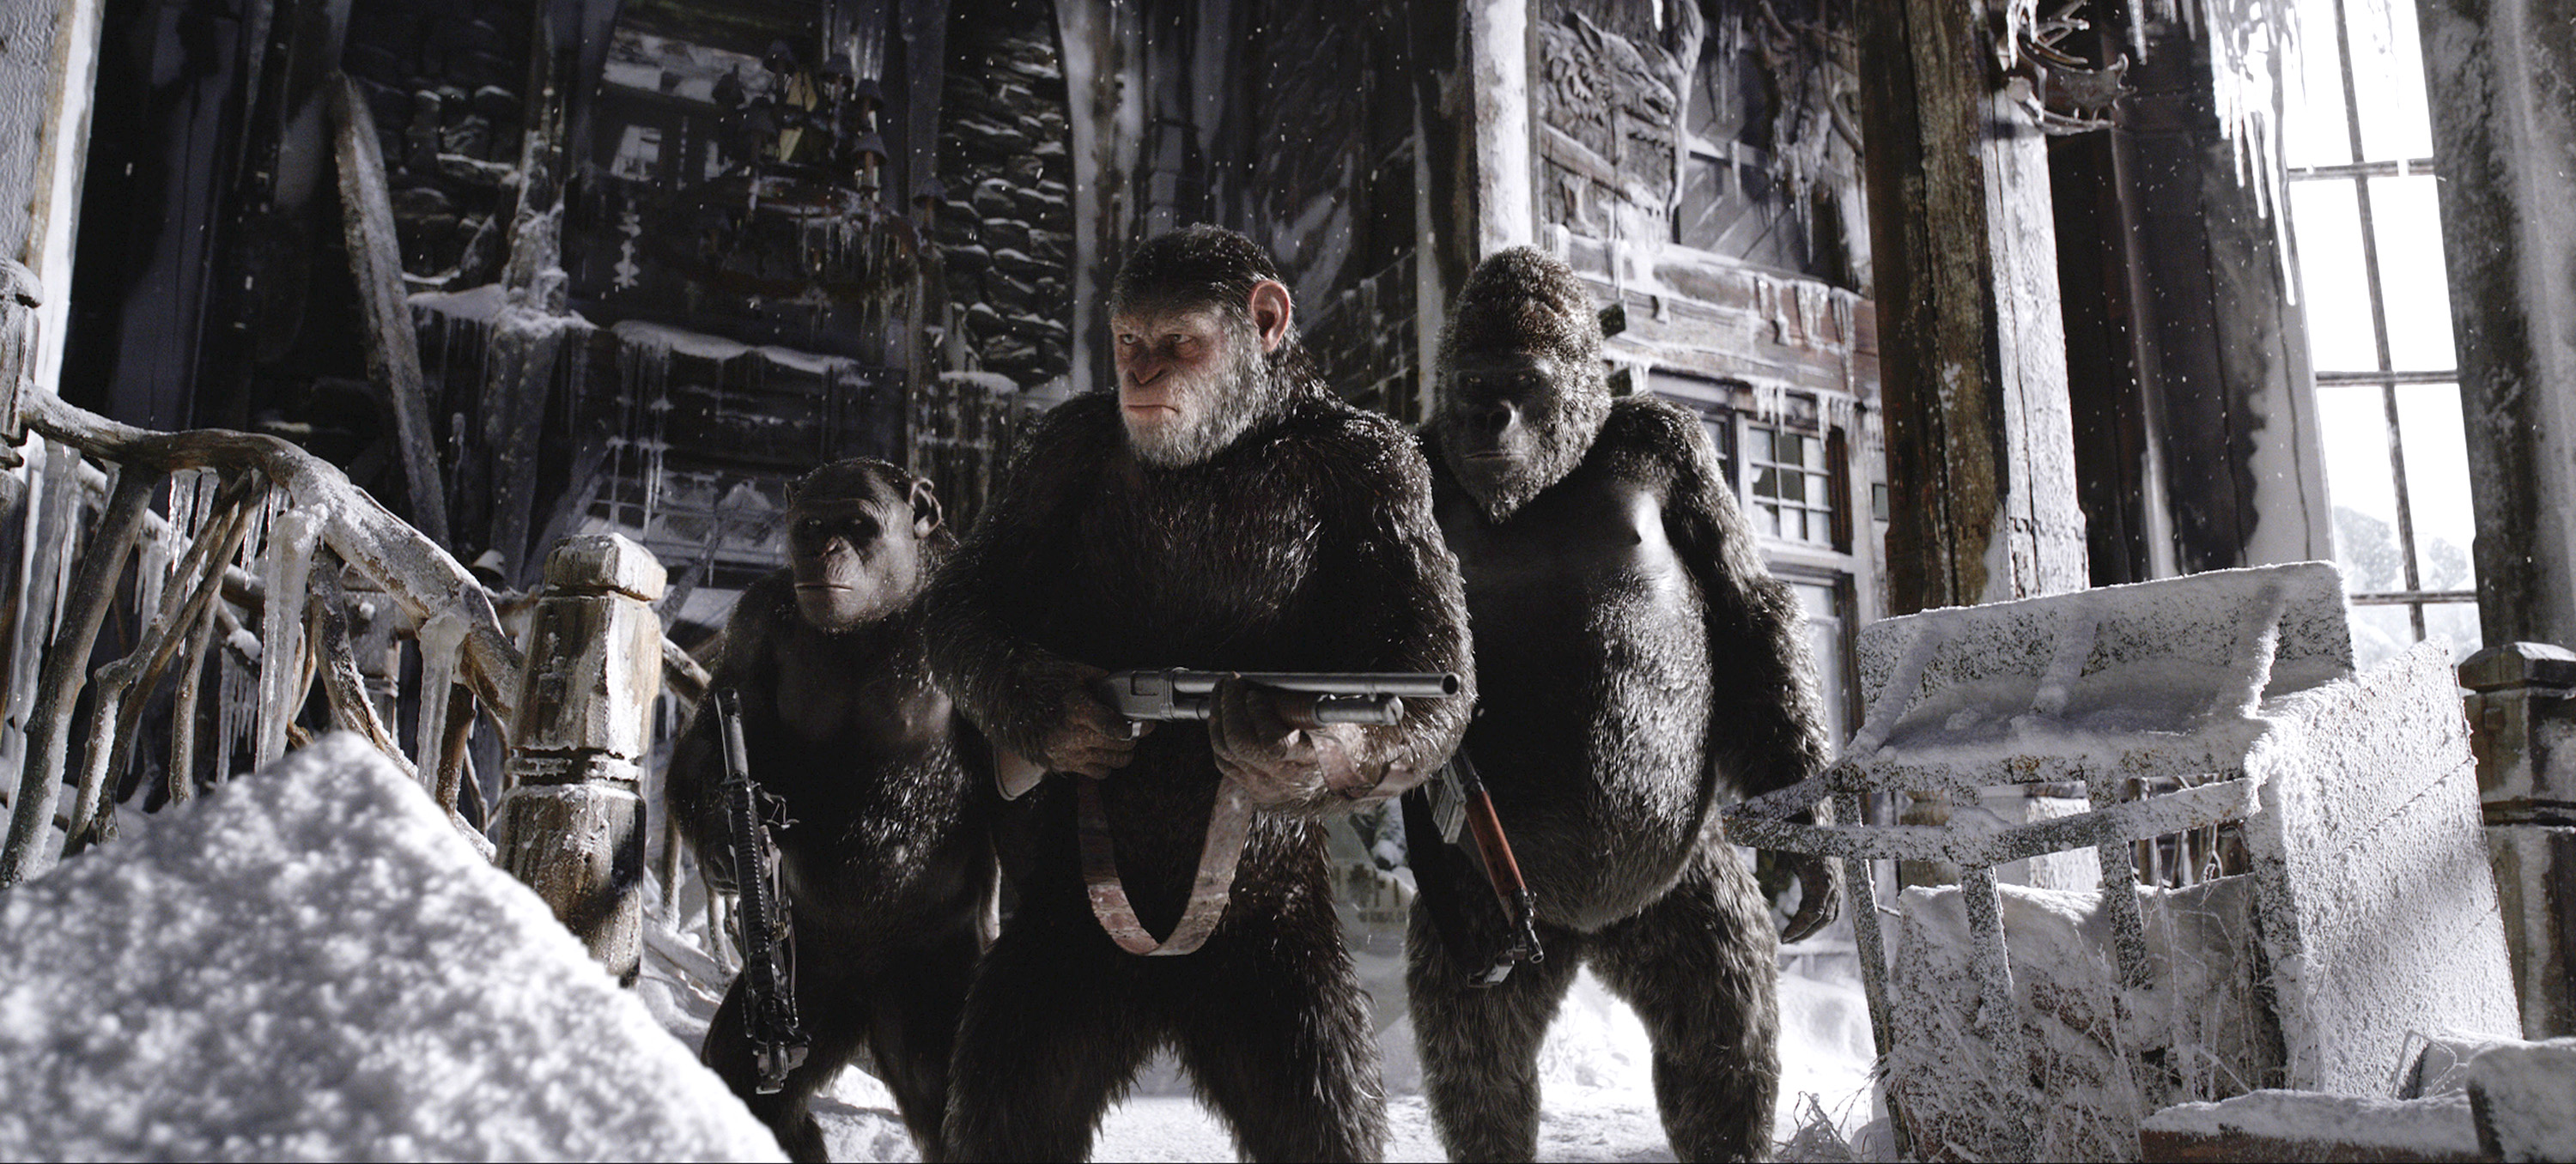 A scene from the movie War for the Planet of the Apes. Photo: CNS/Fox.